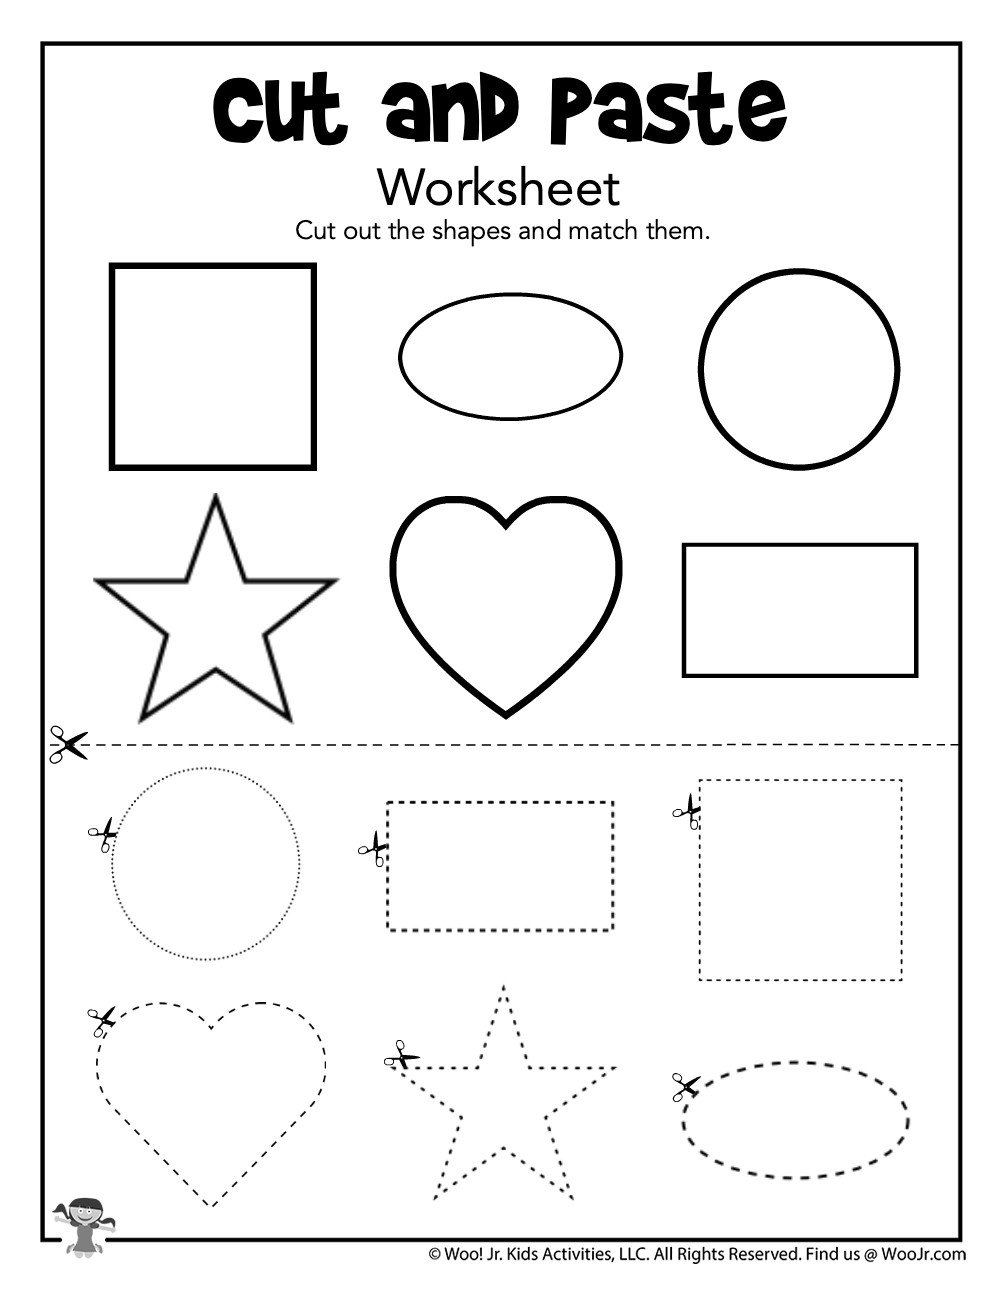 Cut and Paste Worksheet Cut and Paste Matching Shapes Worksheet